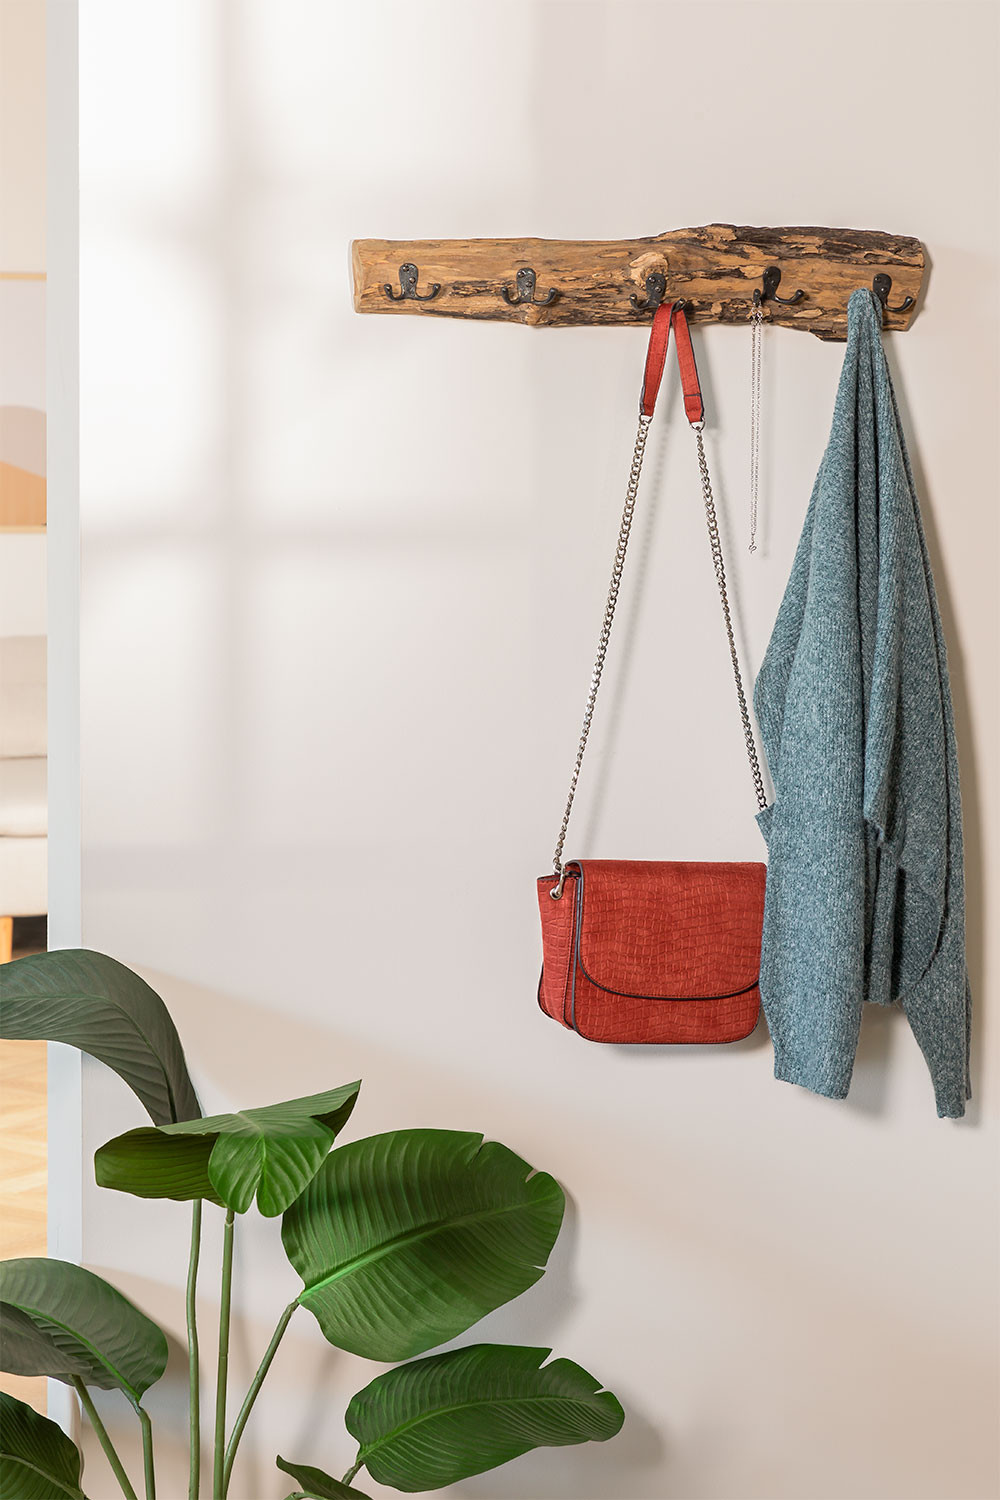 Trunc Recycled Wood Wall Coat Rack, gallery image 979342